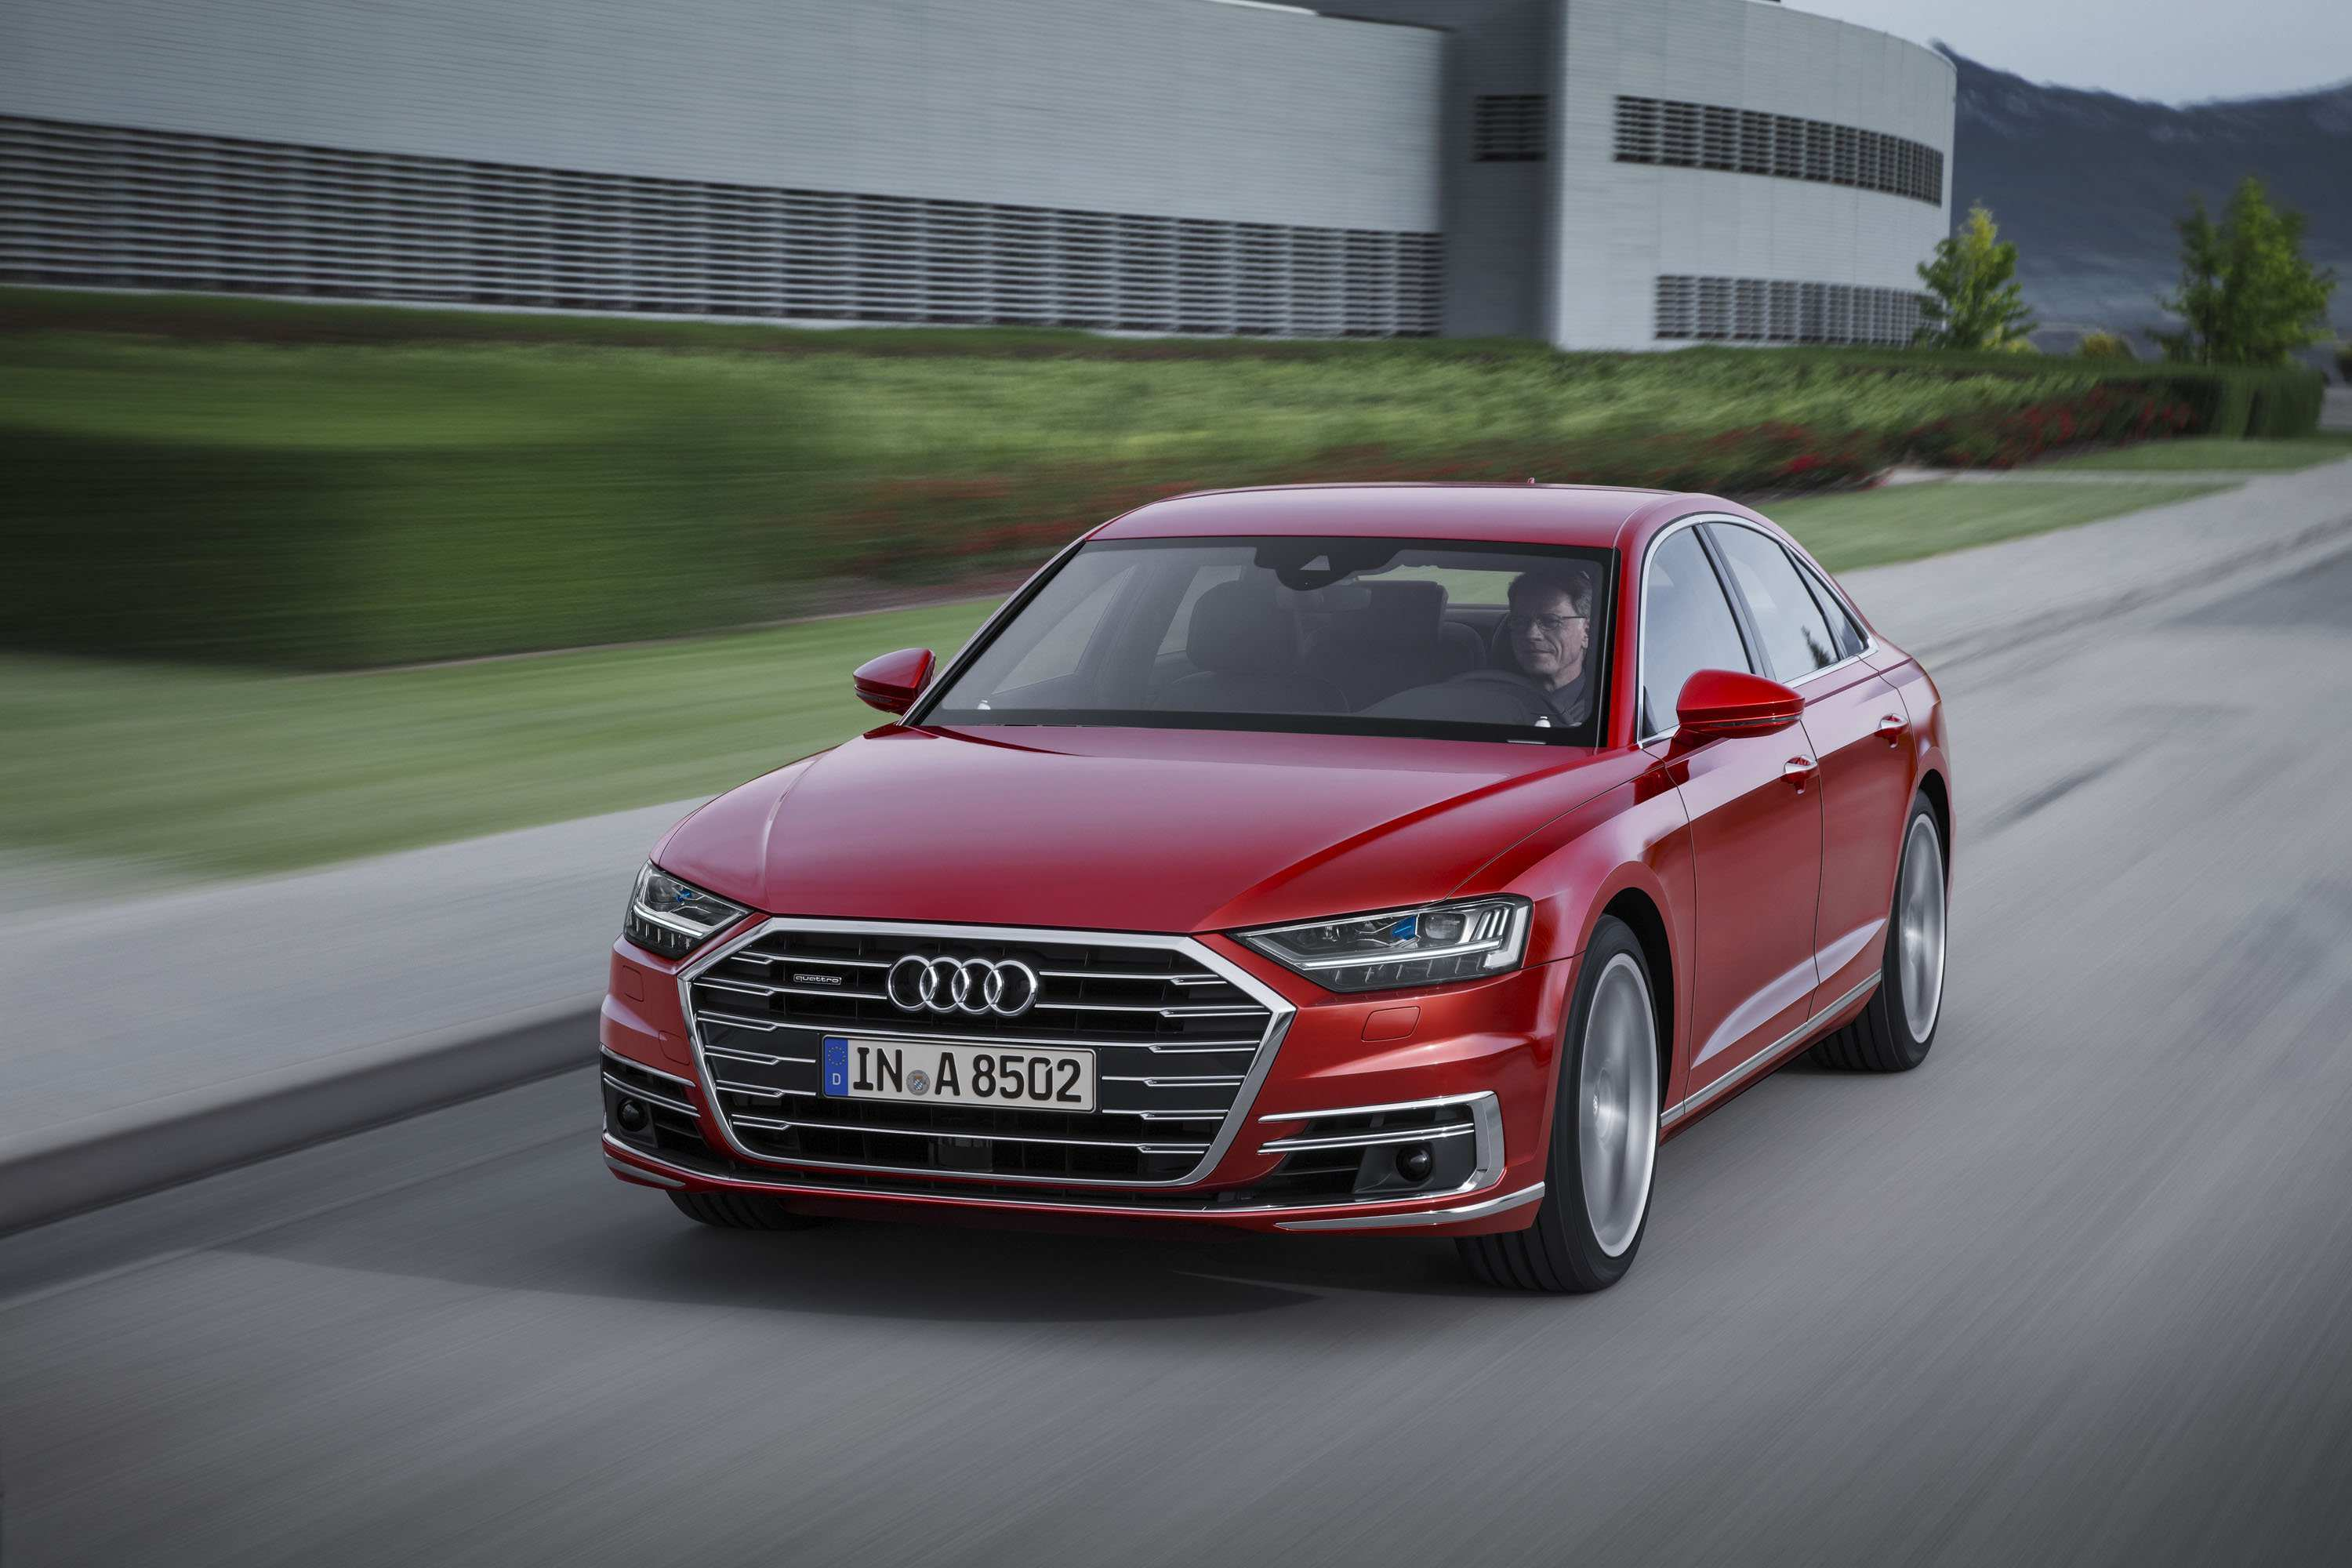 50 Great 2020 Audi A8 Overview for 2020 Audi A8